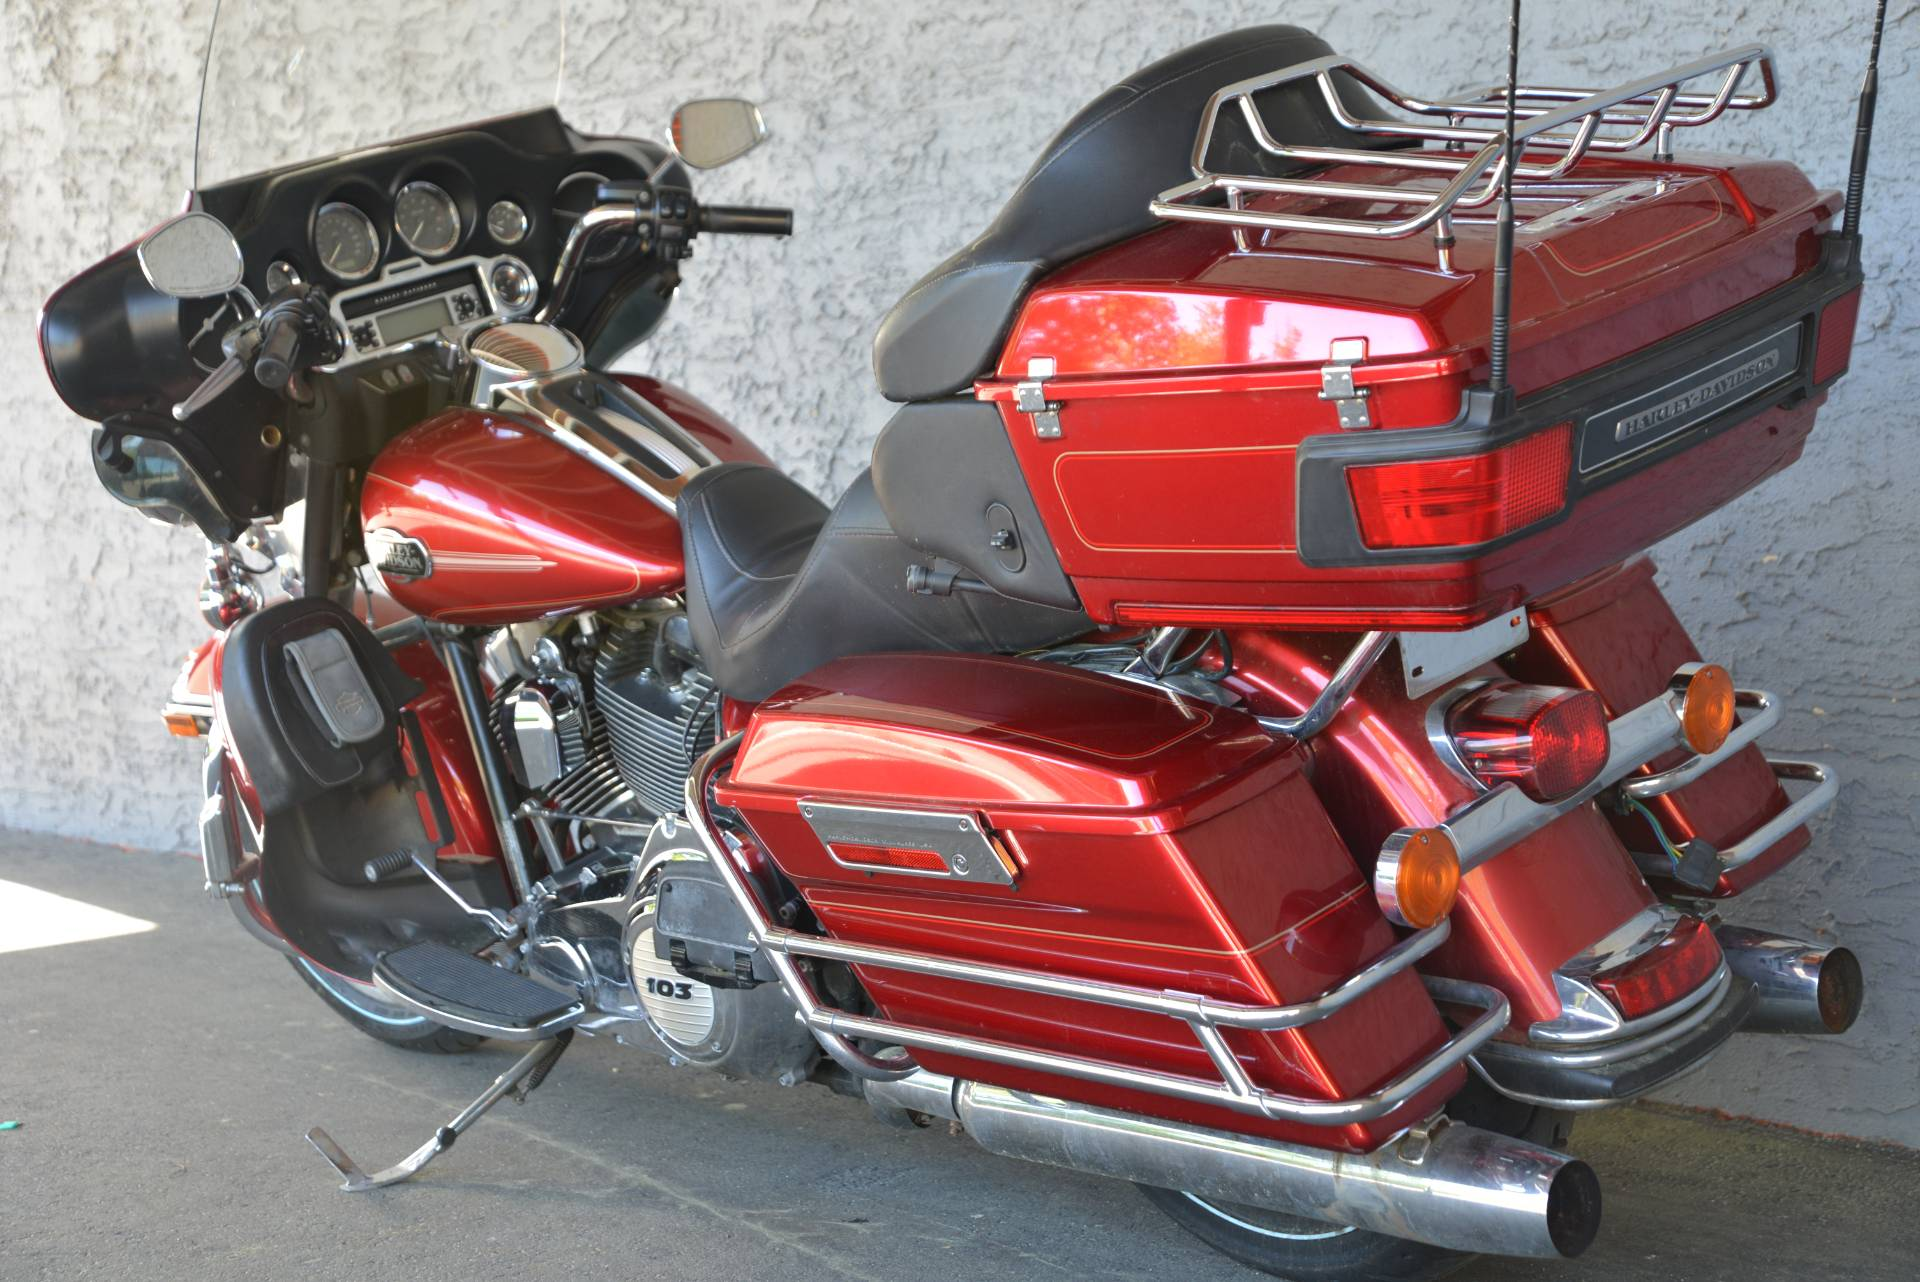 2012 Harley-Davidson ELECTRA GLIDE ULTRA in Lakewood, New Jersey - Photo 14